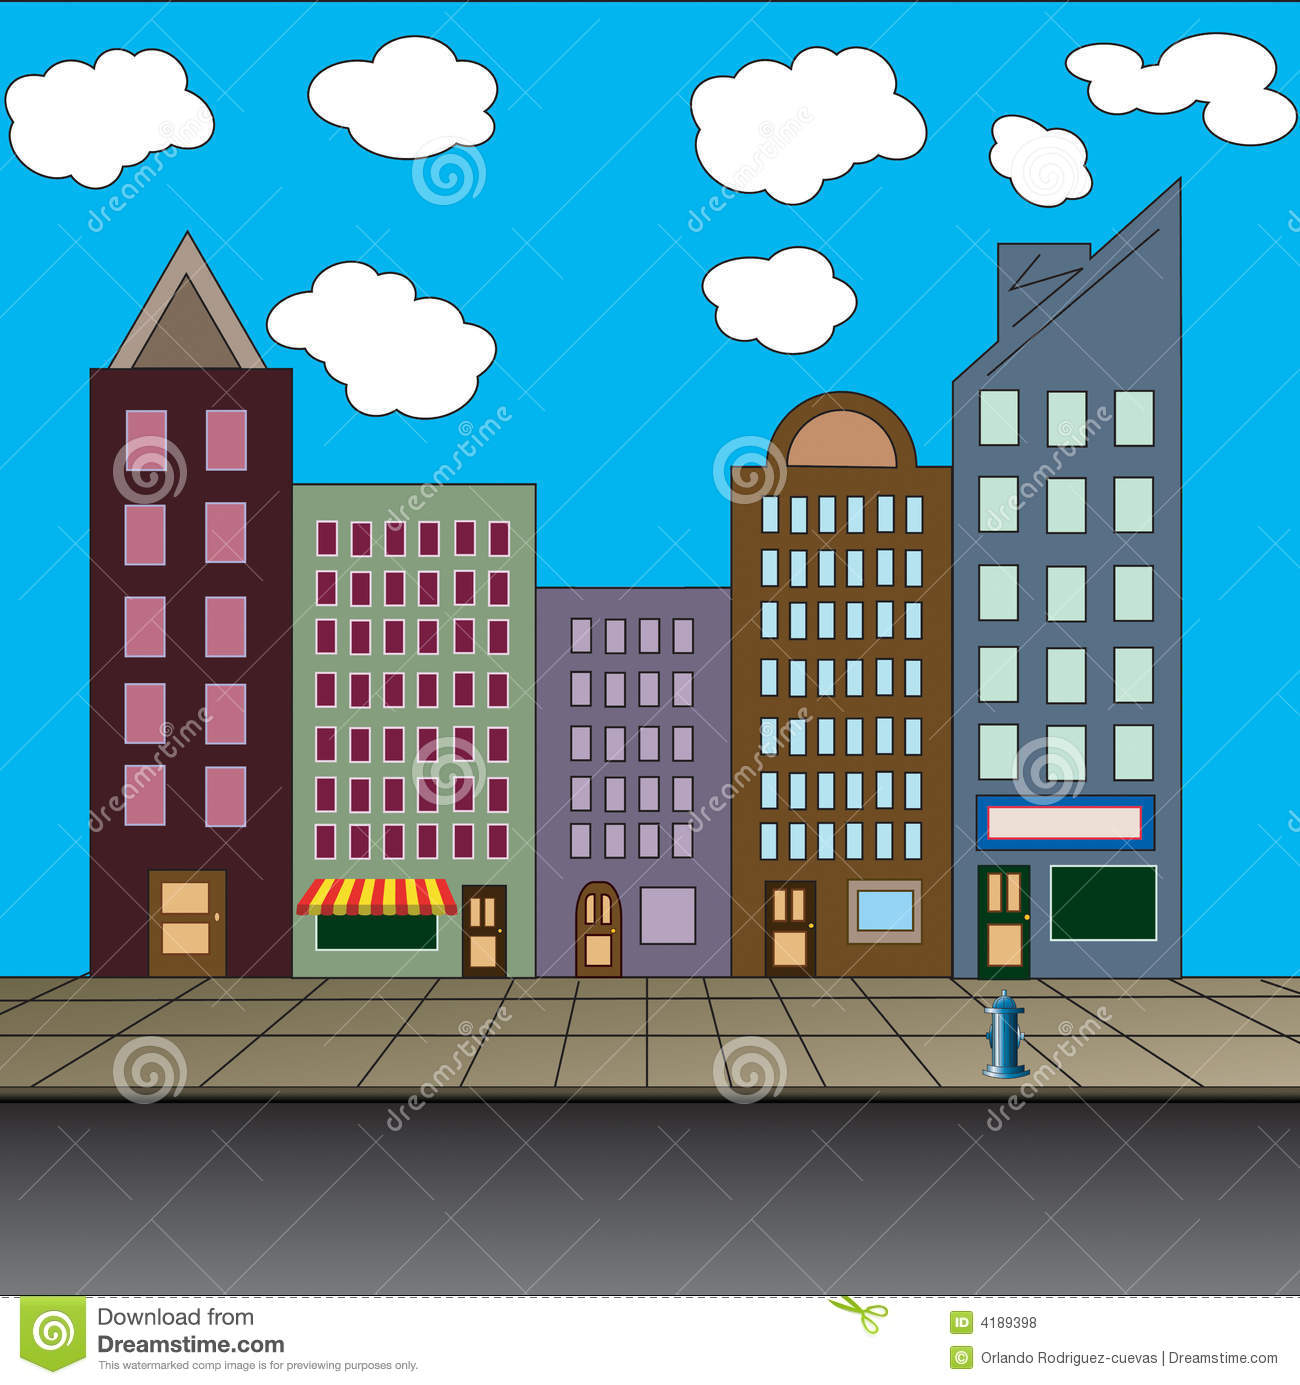 Main street clipart graphic freeuse library Main Street Clipart - Clipart Kid graphic freeuse library